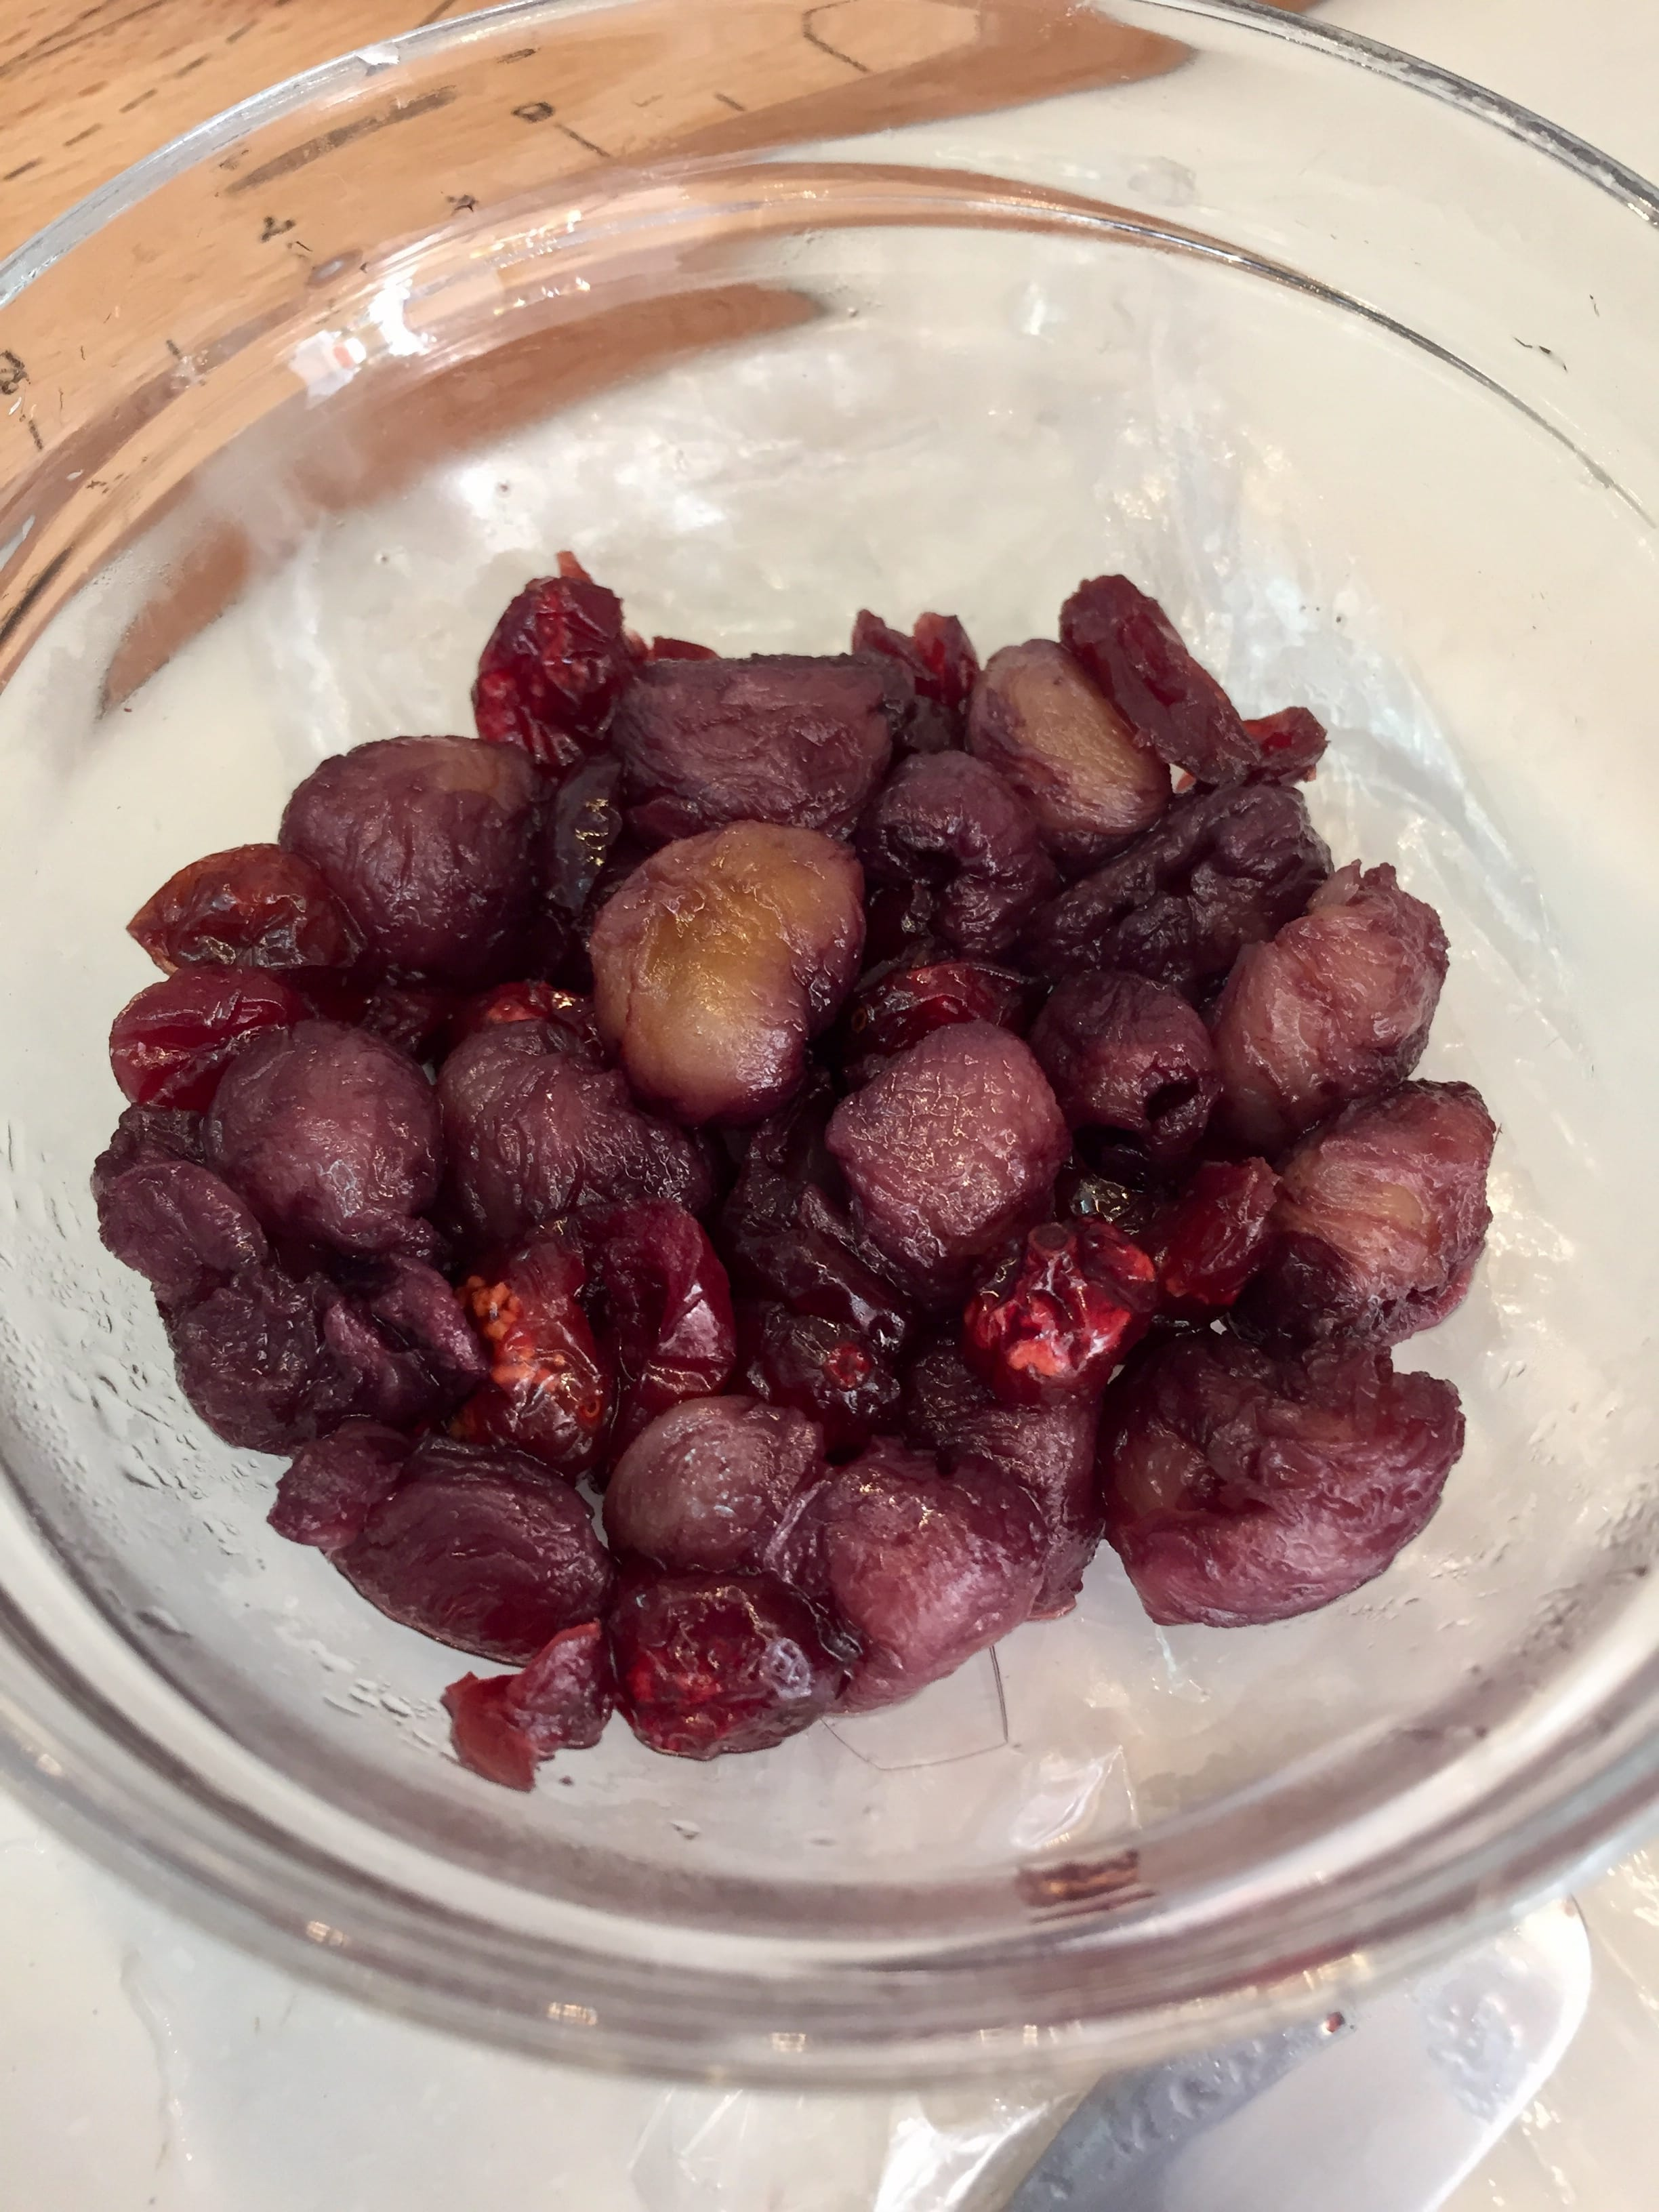 Longan and cranberry soaked in red wine for two days